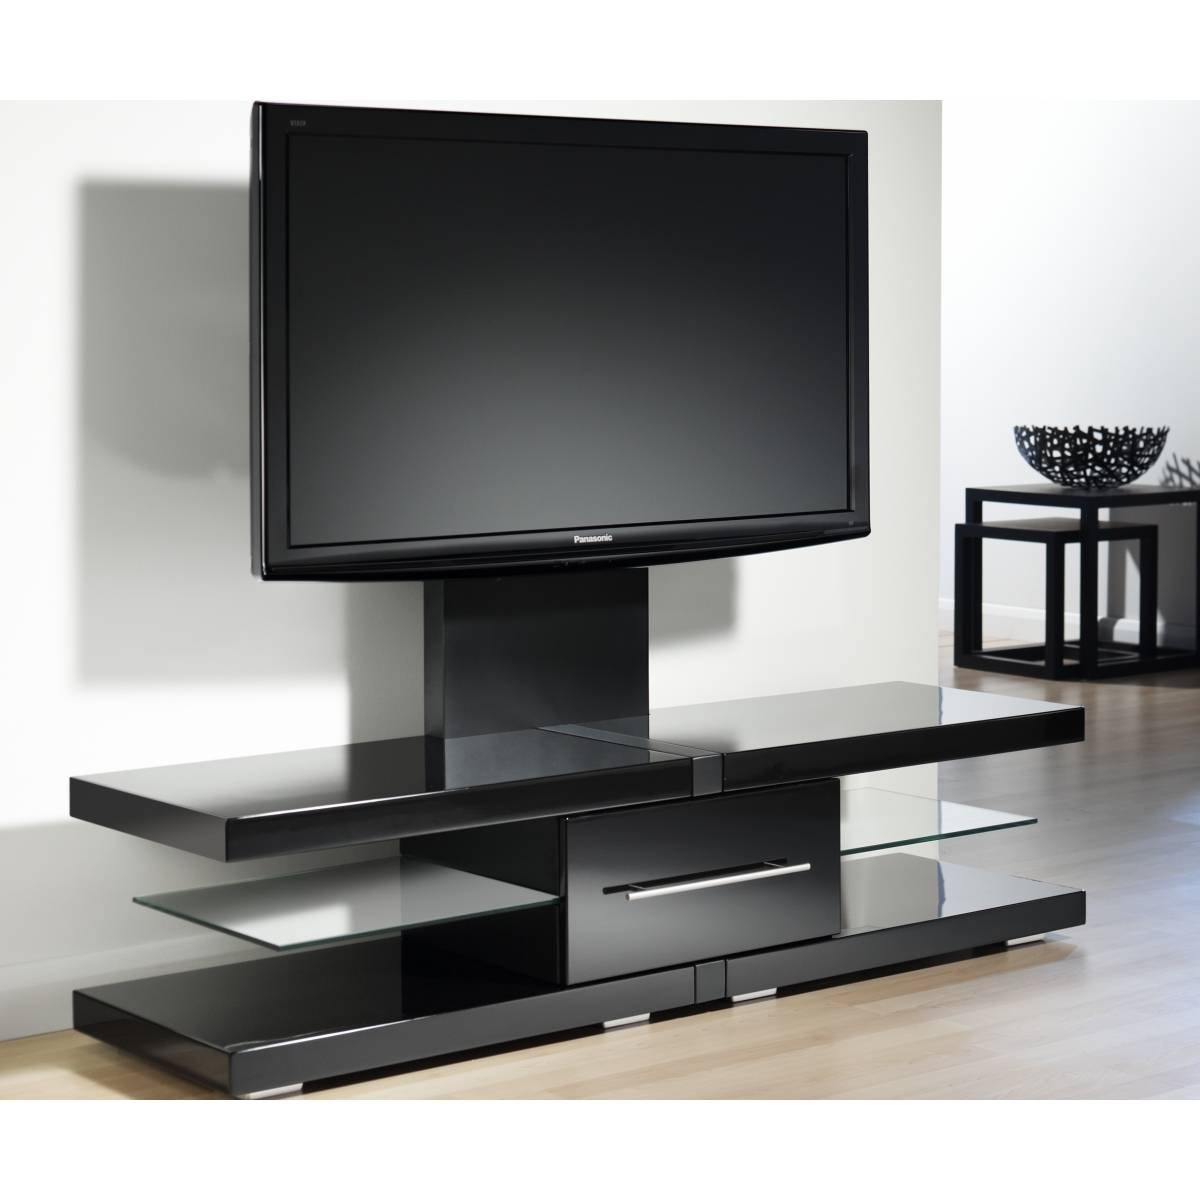 Modern Black Tone Wide Screen Tv Stand With Display Shelves And pertaining to Wide Screen Tv Stands (Image 12 of 15)